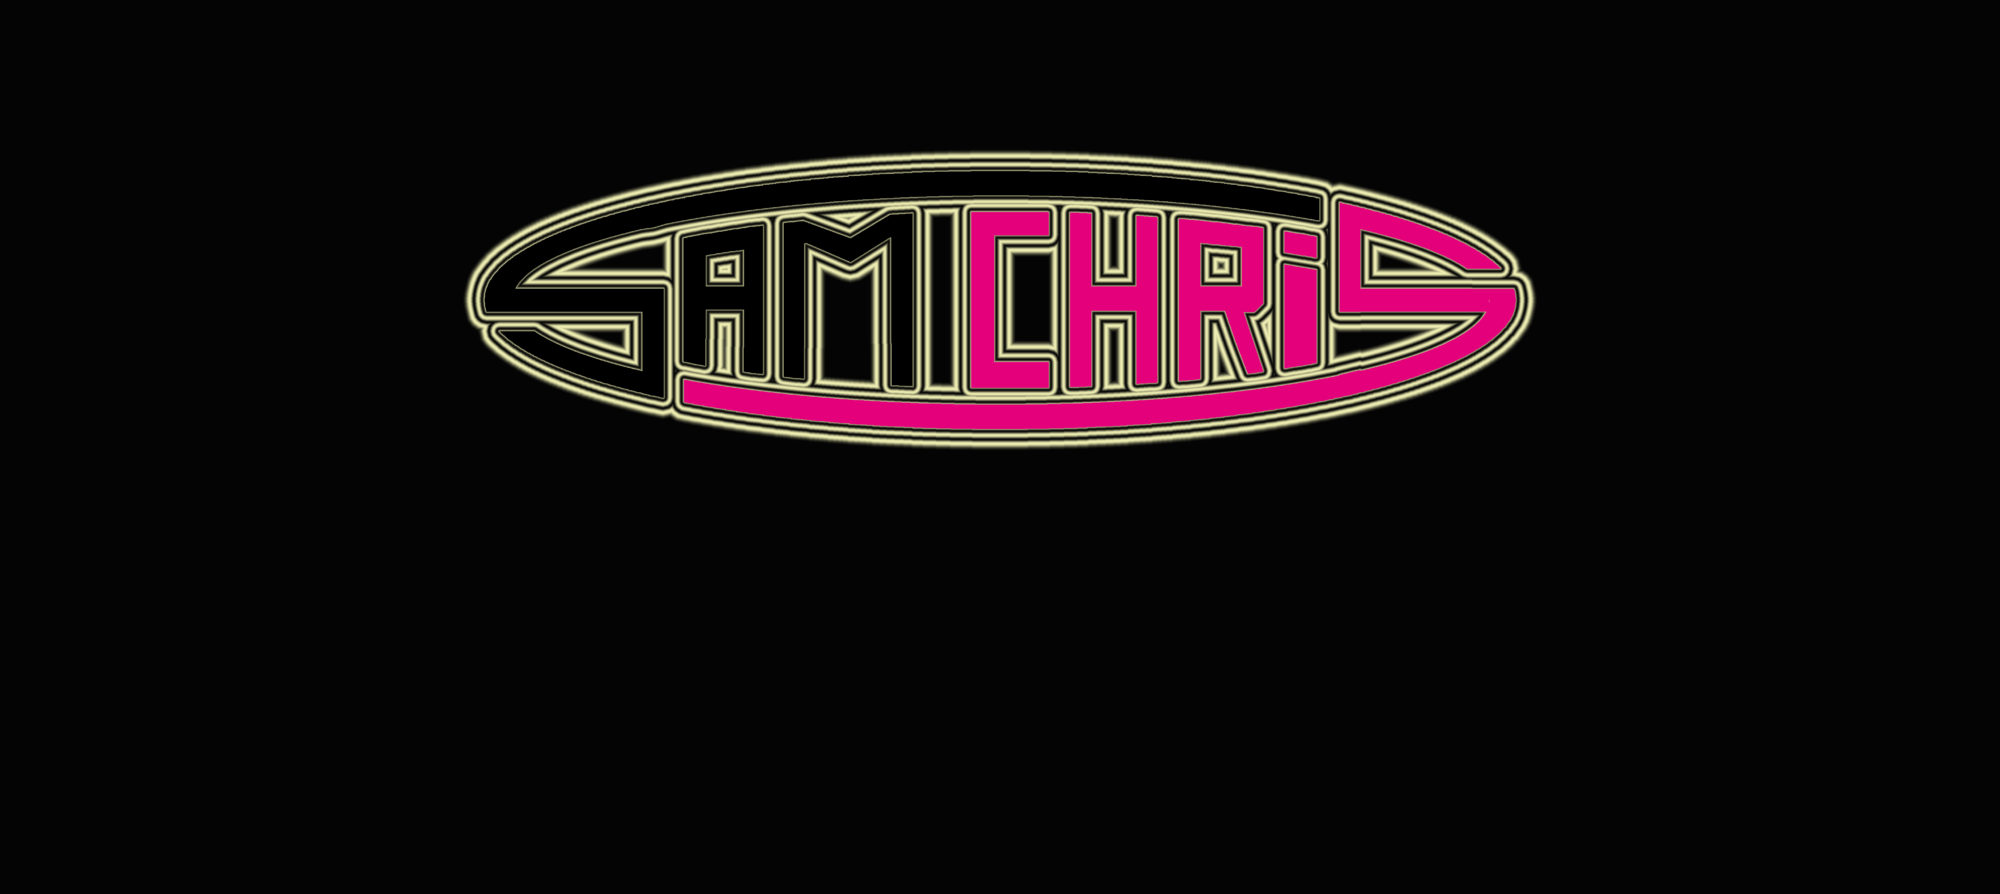 Sam CHRIS